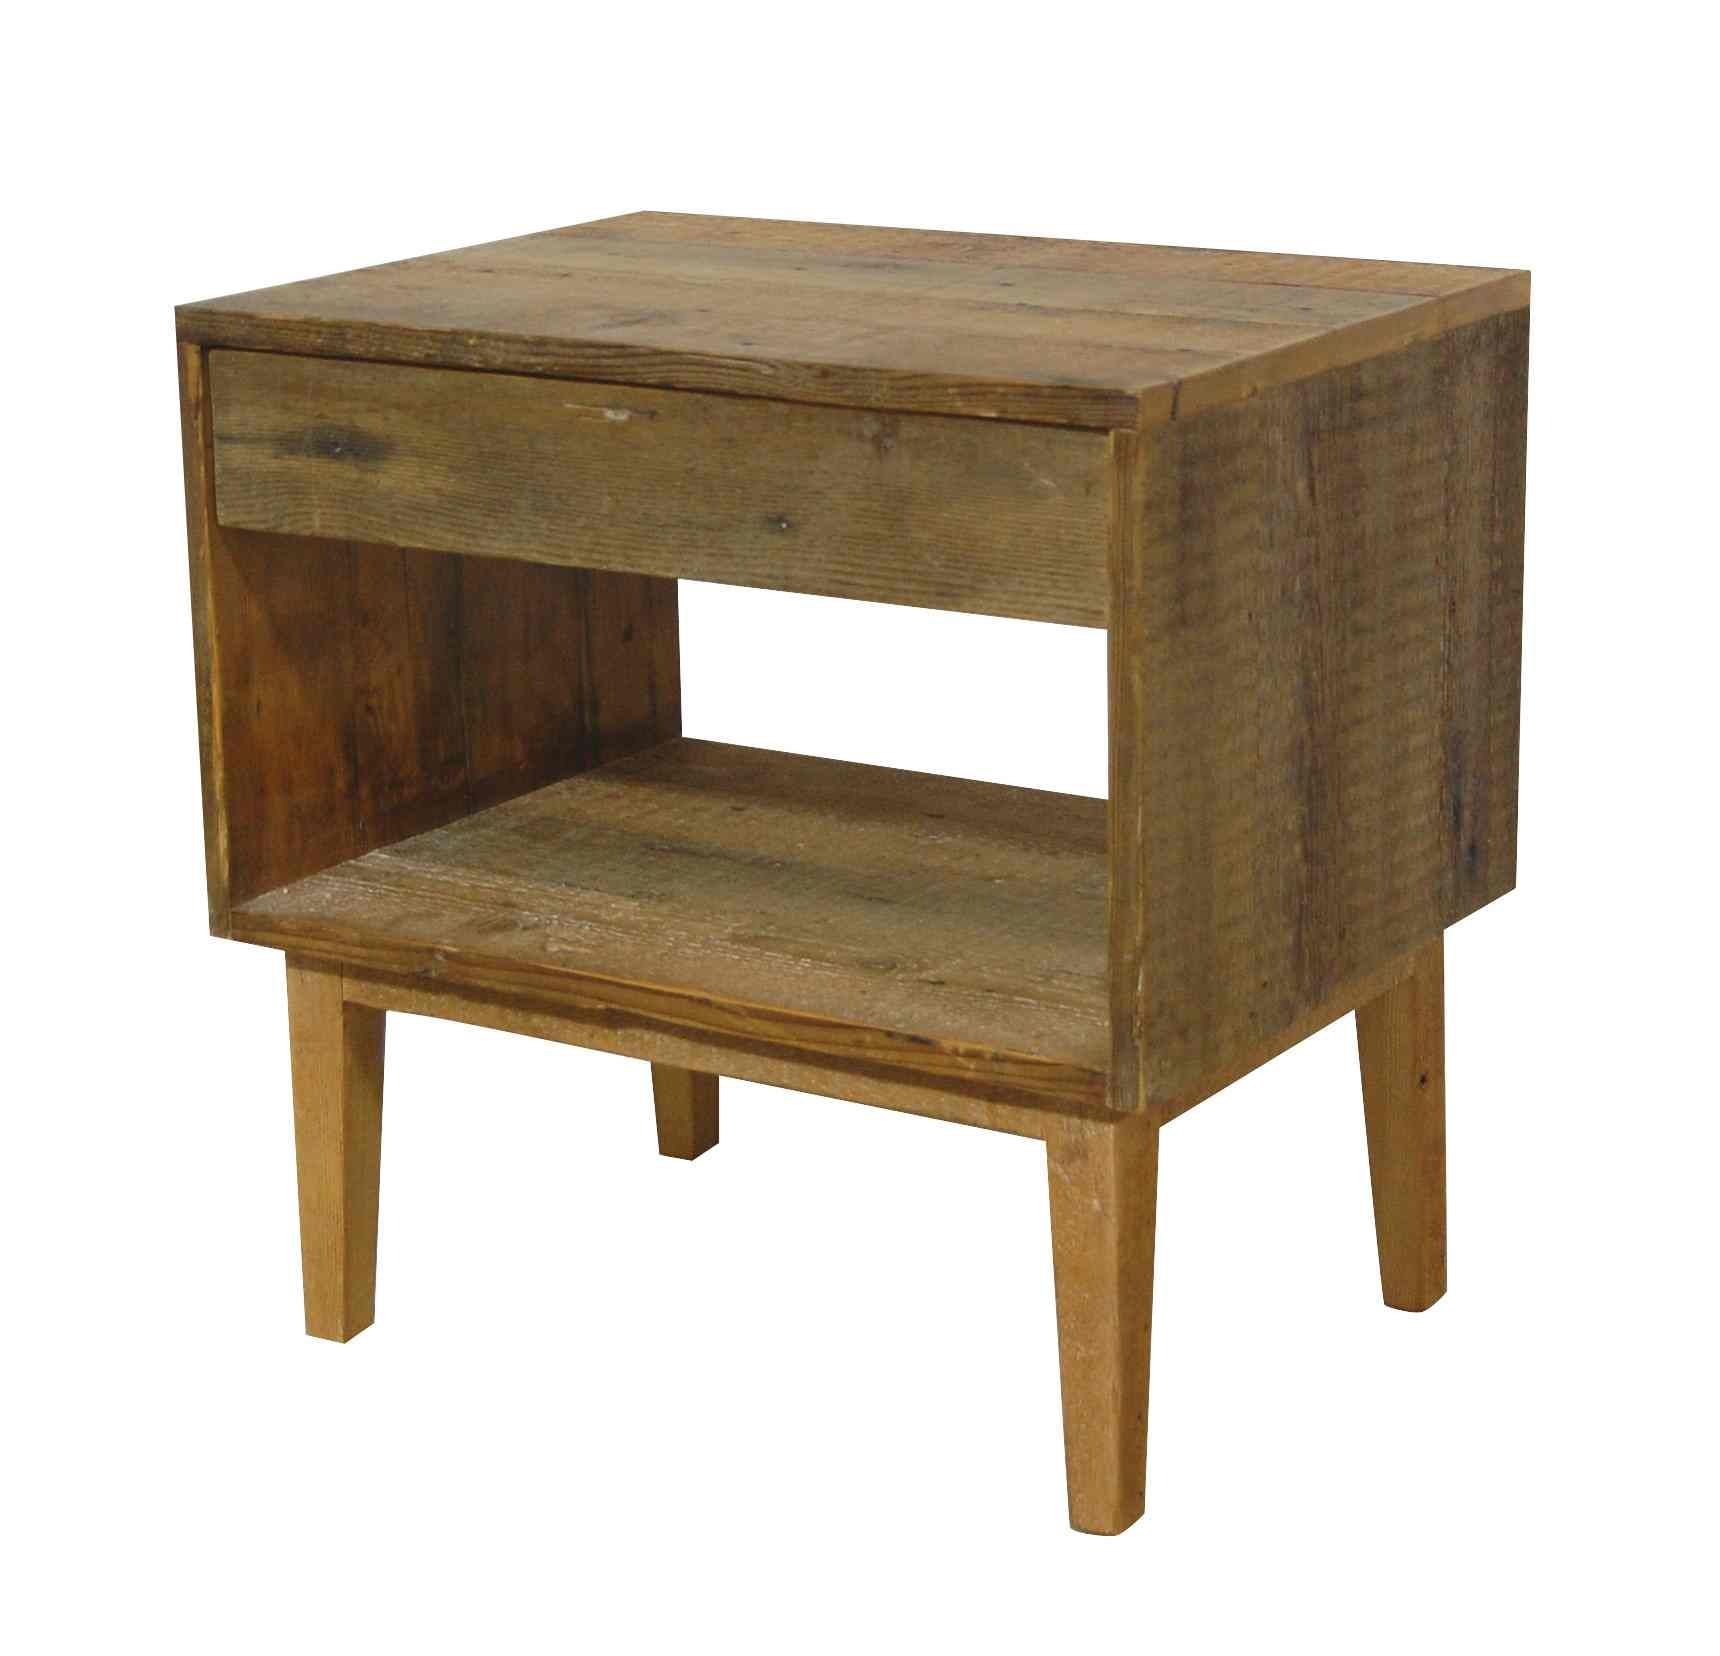 Eco Friendly Furniture For Earth Day U2013 Made In Los Angeles | Urban Woods